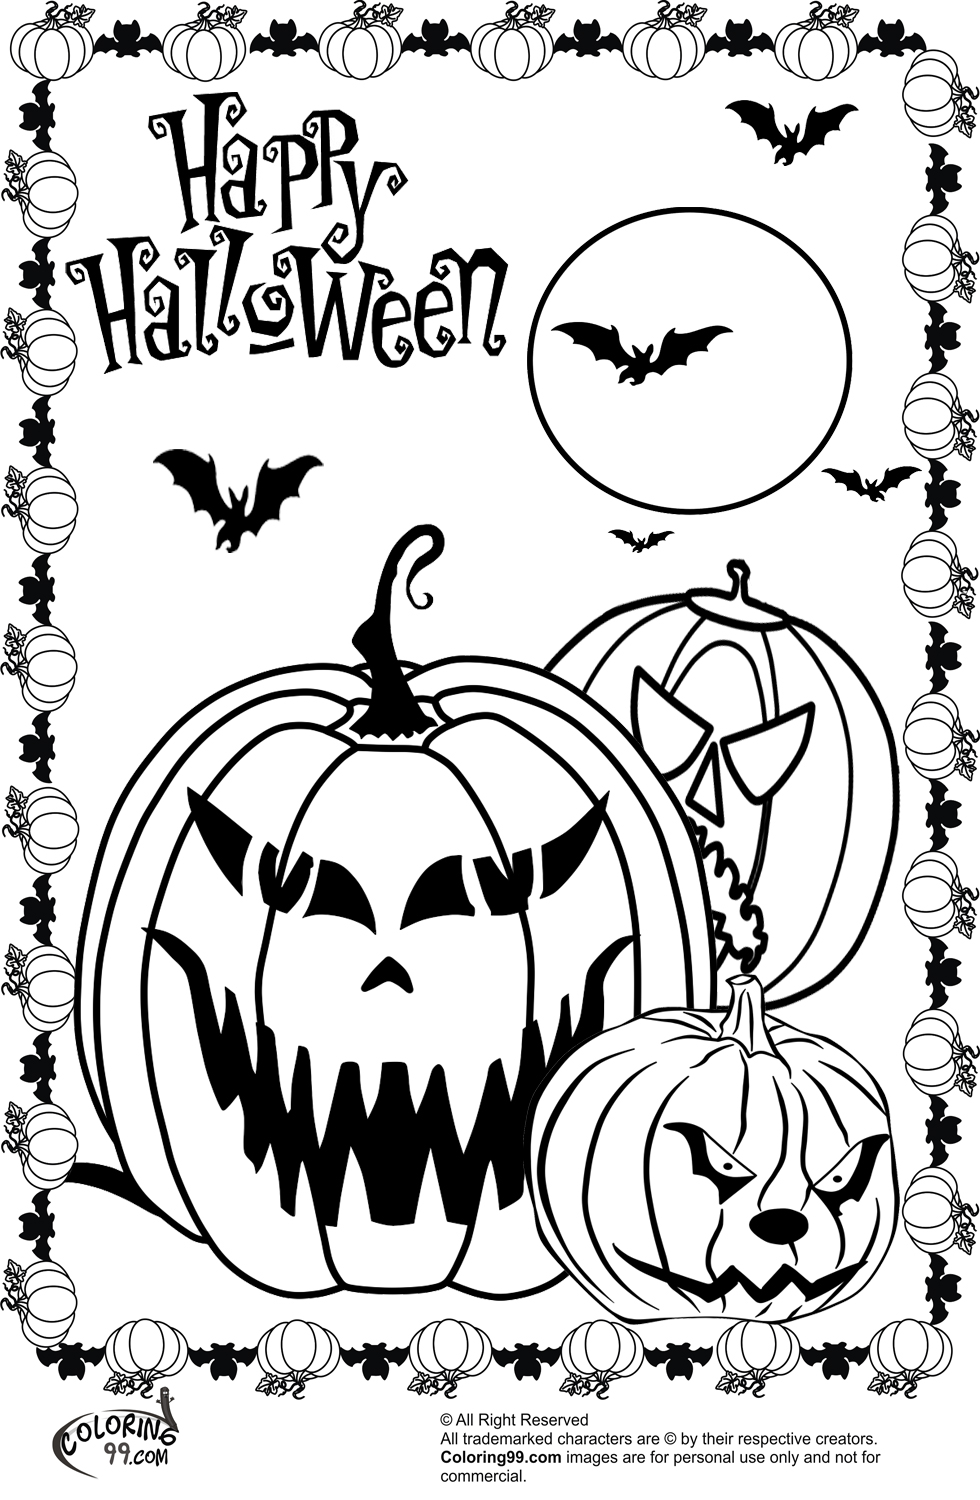 Evil Pumpkin Drawing at GetDrawings.com | Free for personal use Evil ...